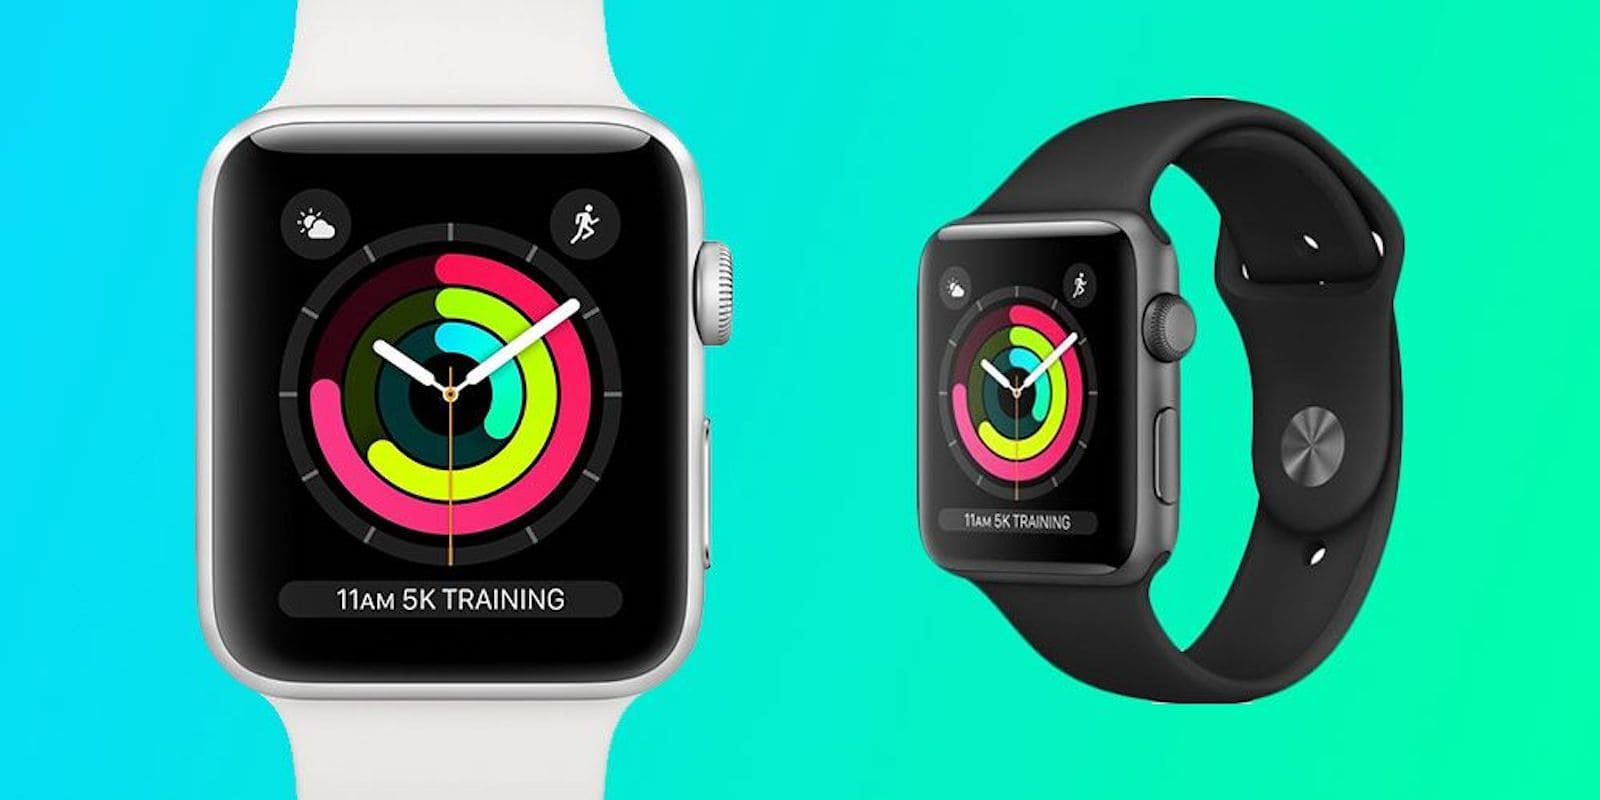 Now's a great time to swipe up the outgoing model of Apple Watch.